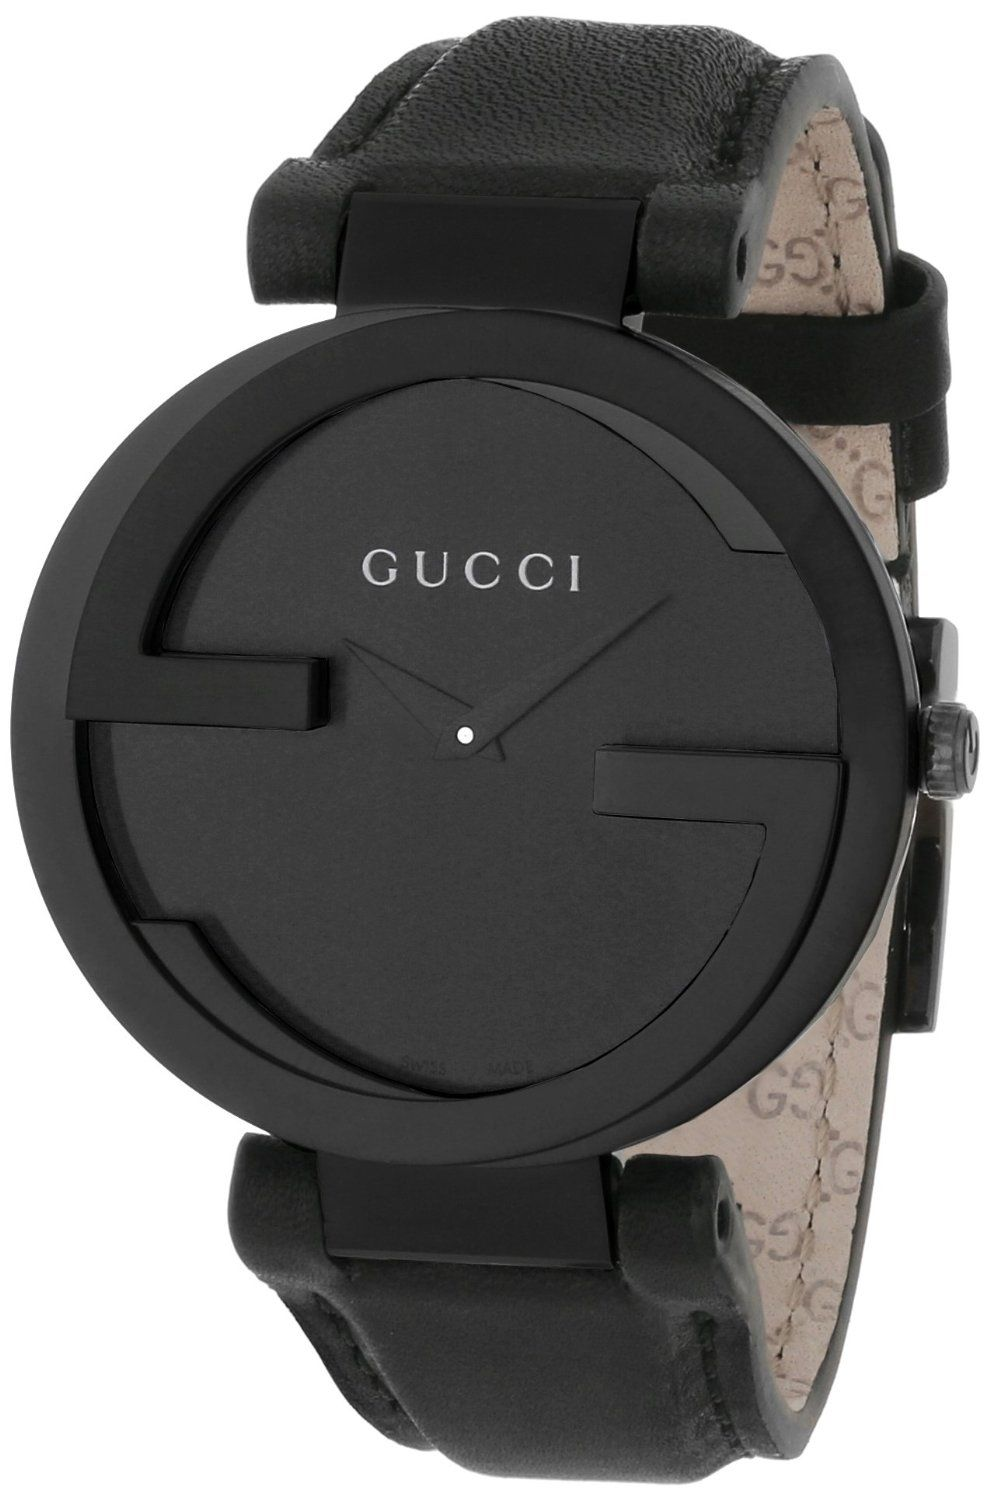 a132732313a Women s PVD Case Watch with Black Dial and Strap in 2019 ...